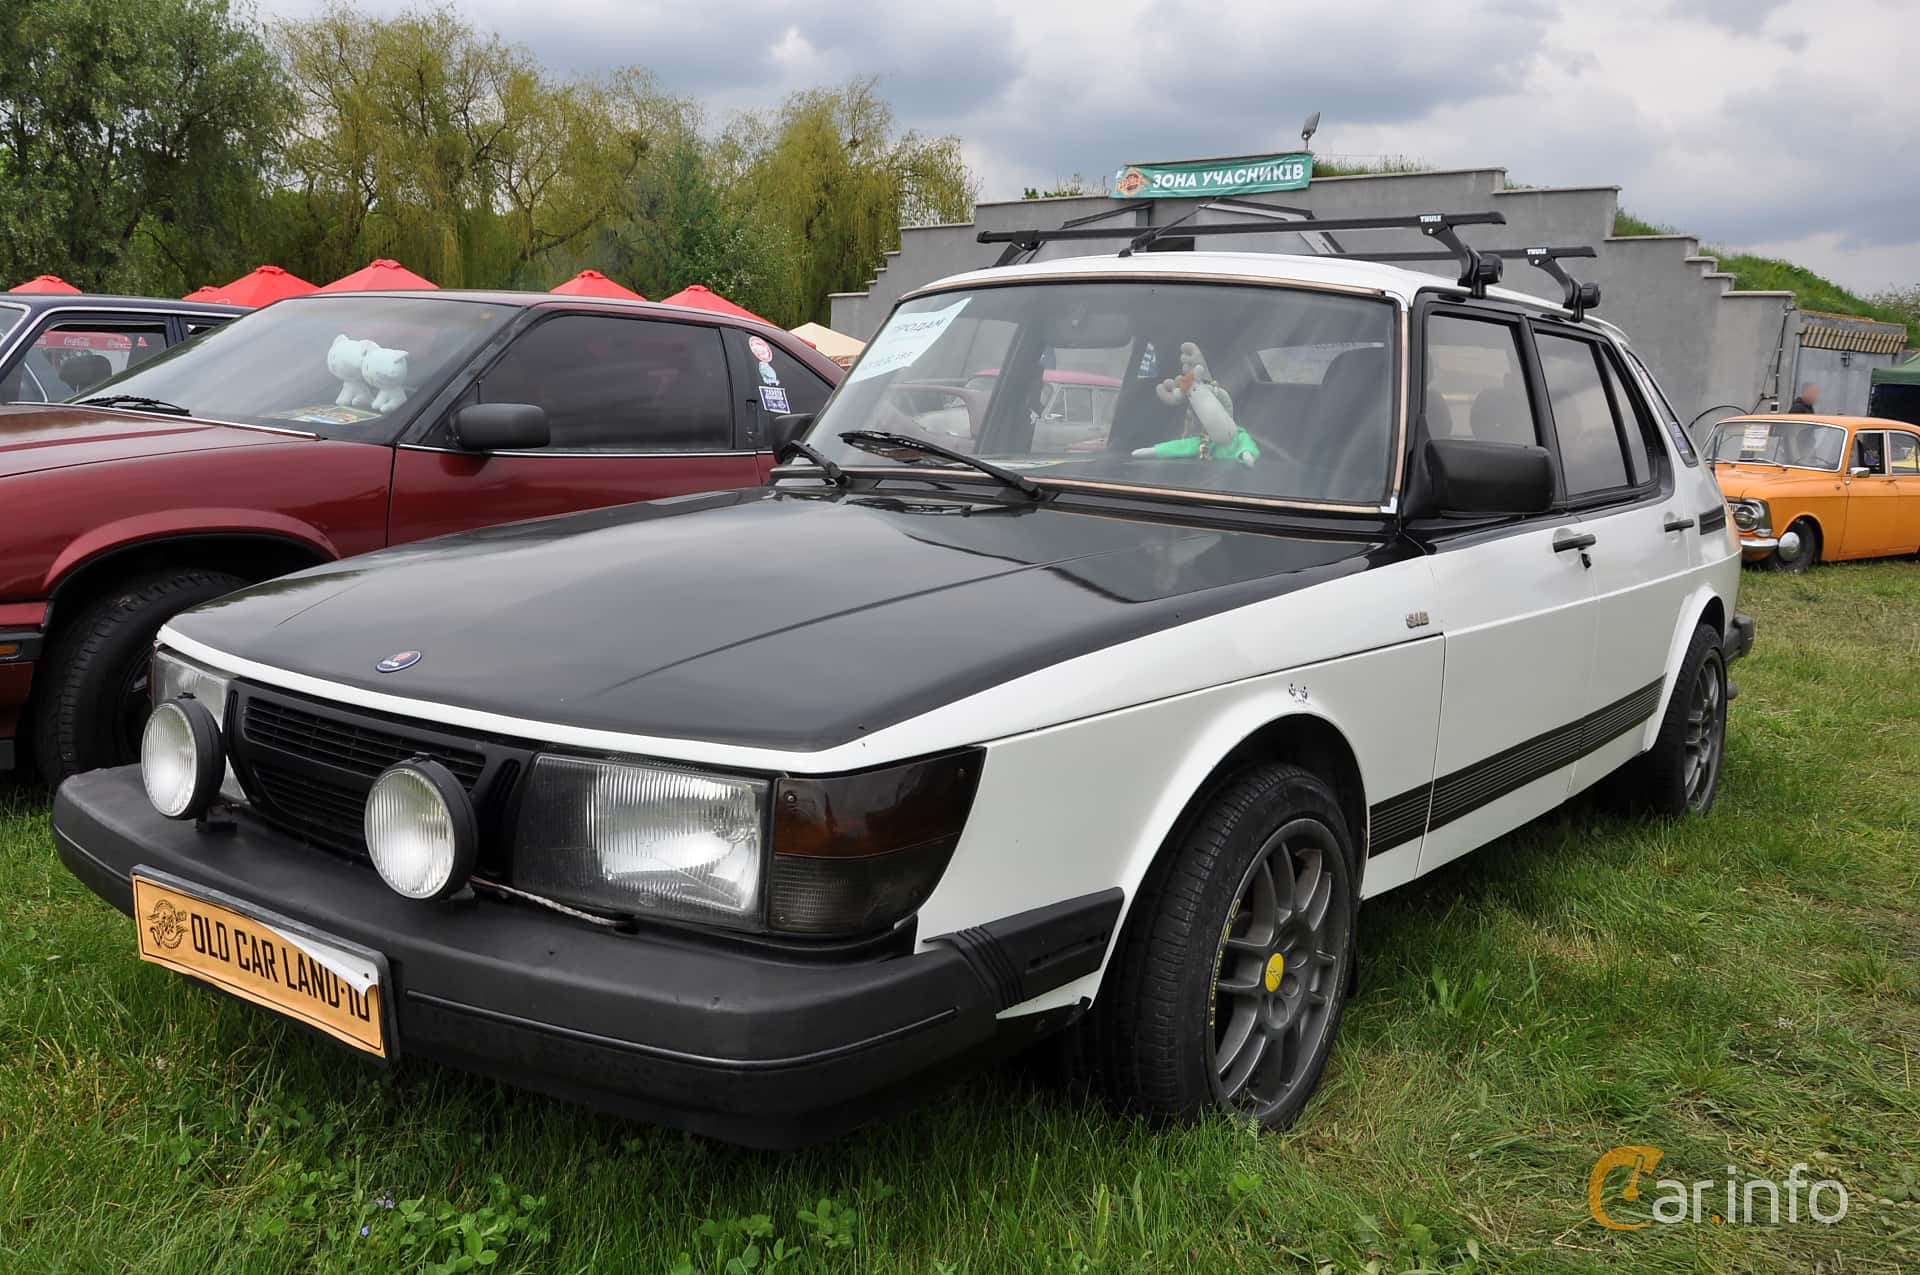 Saab 900 3-door 1985 at Old Car Land no.1 2019